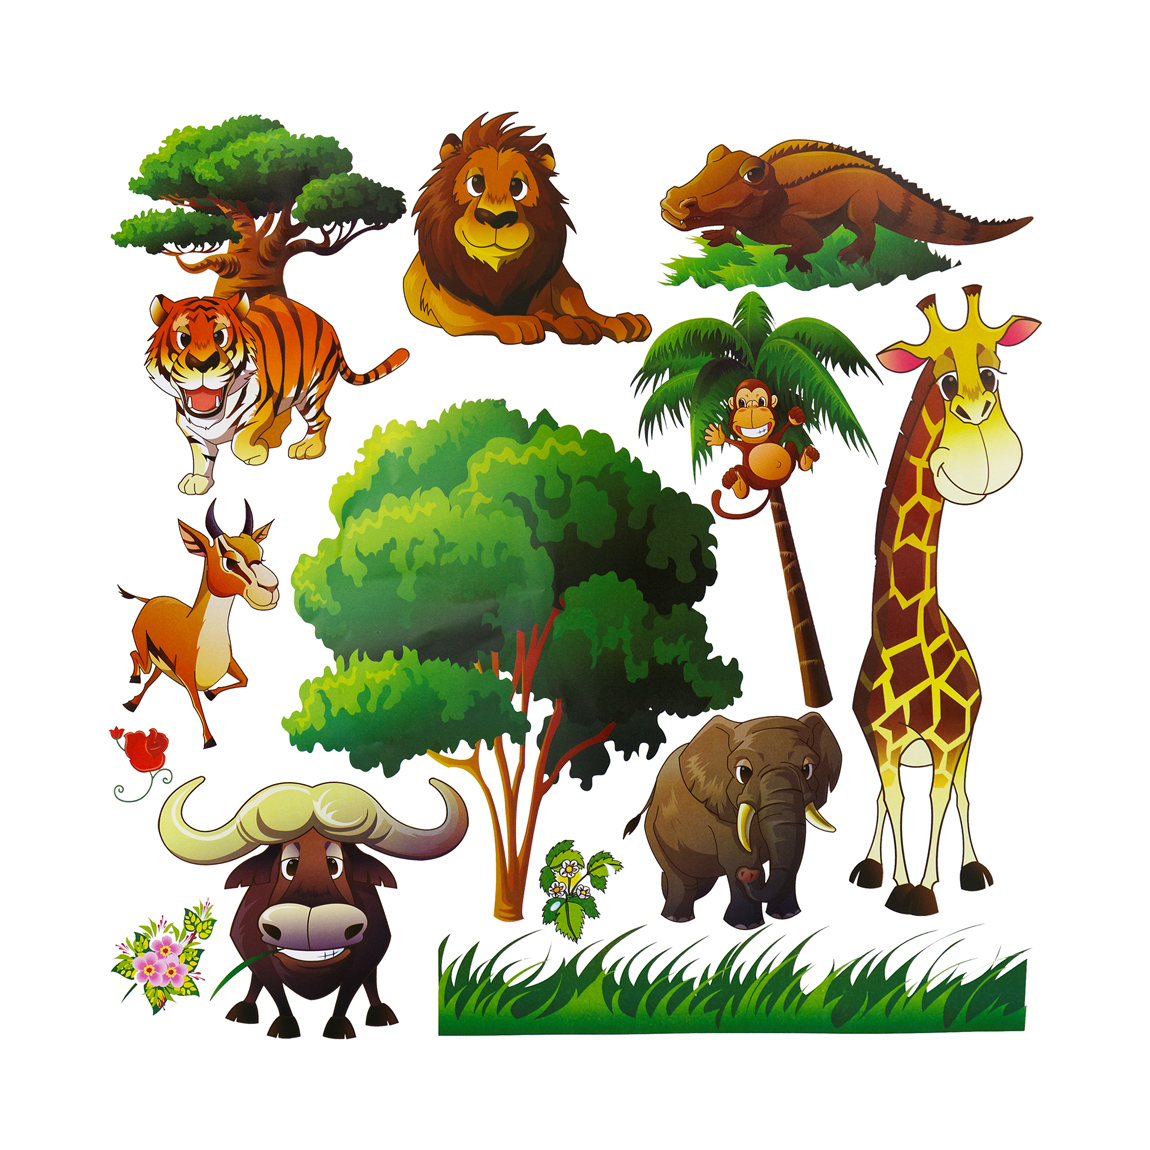 Animal wall decals for kids room decor dekosh for Wall decals kids room